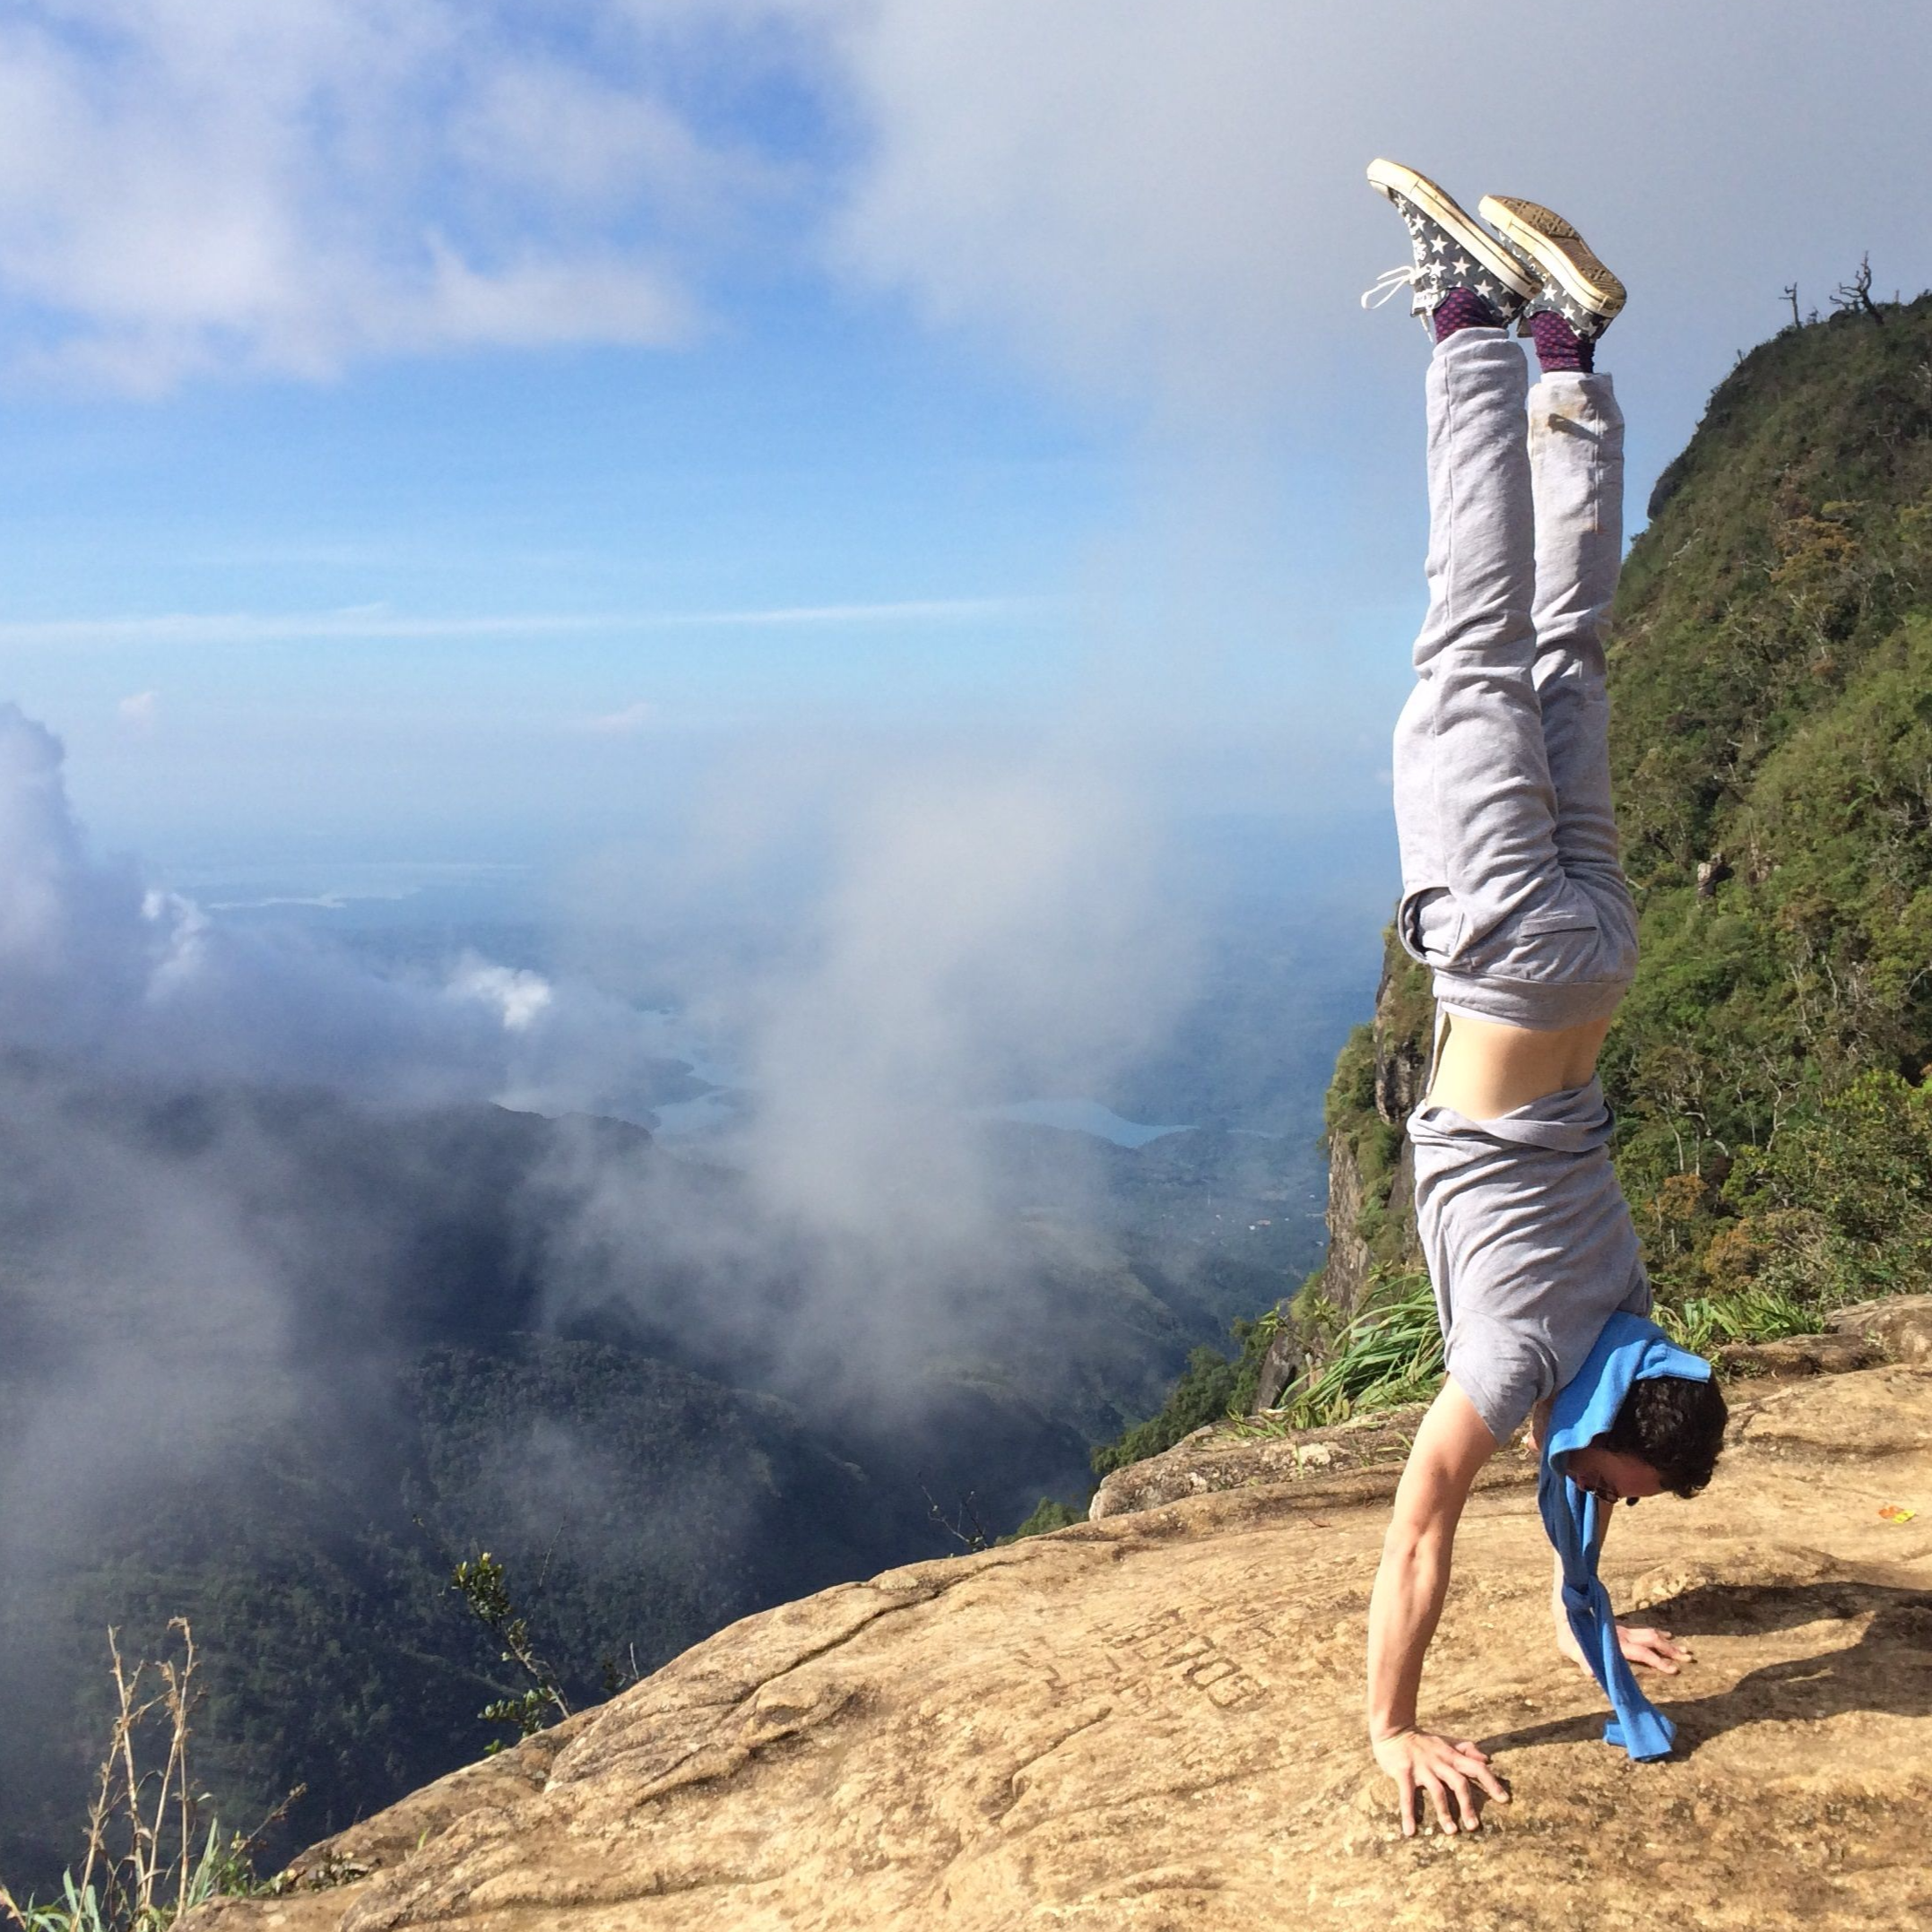 Luminousyogi doing a handstand at Worlds End